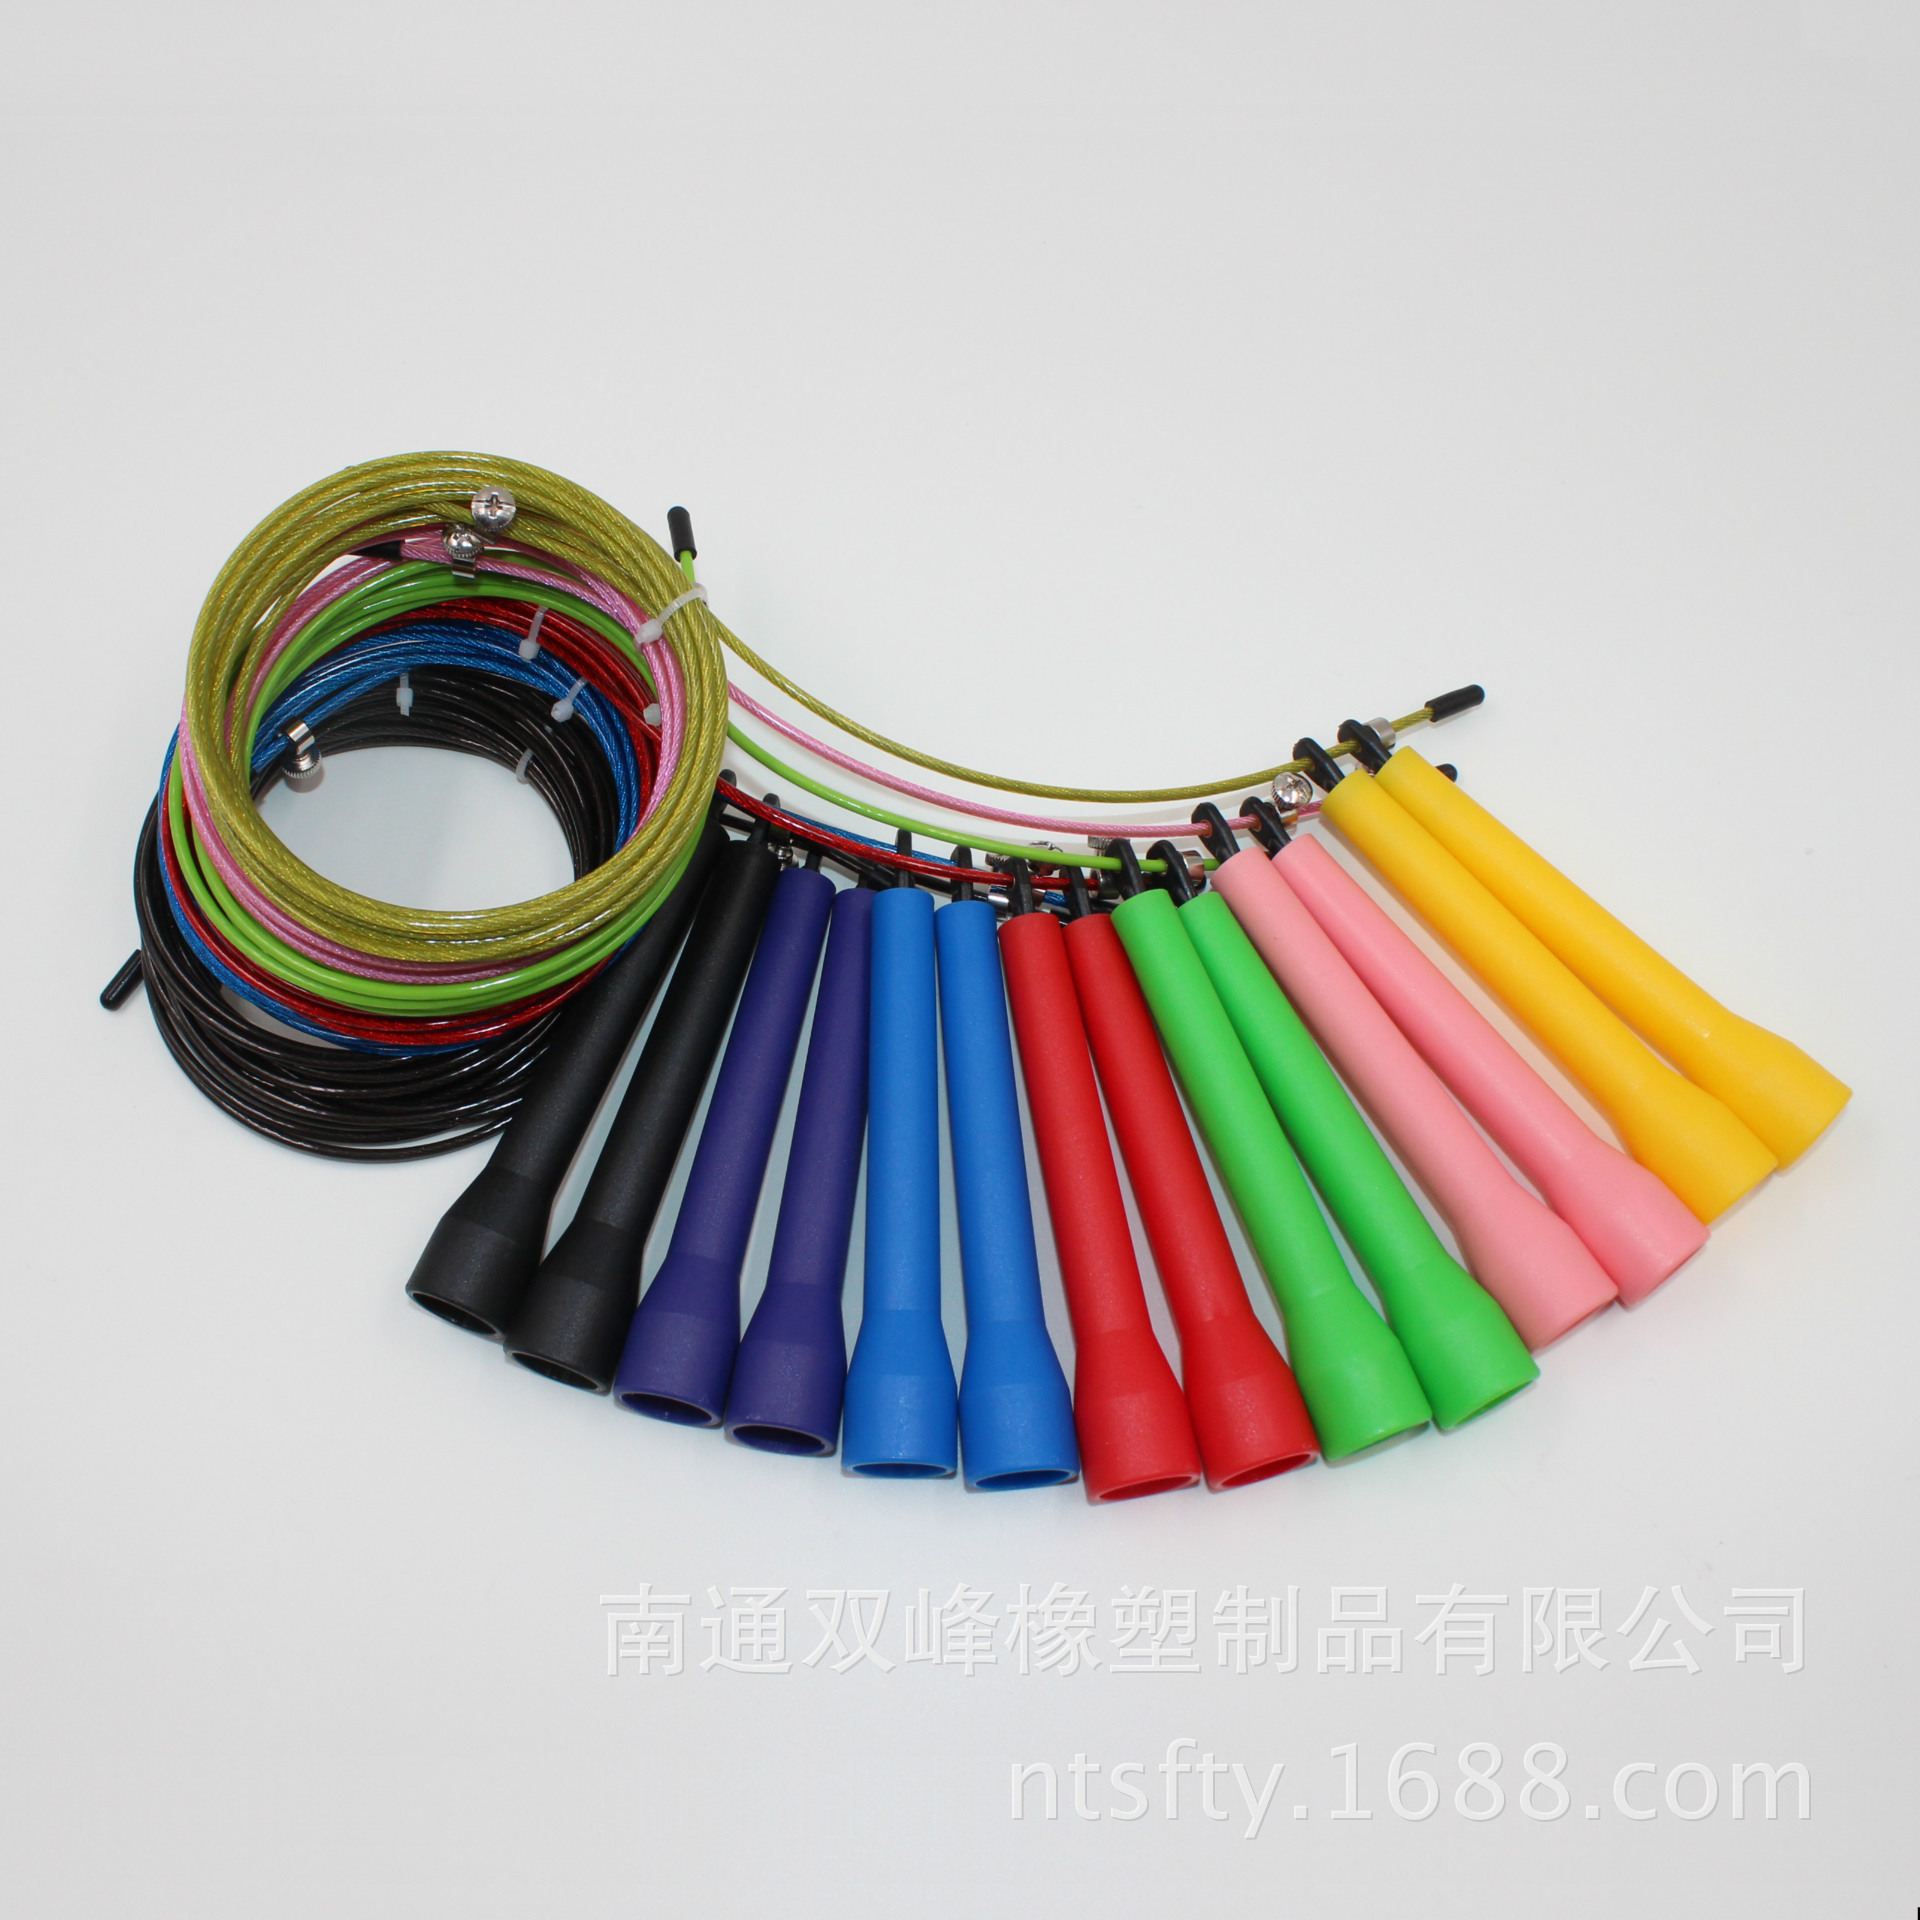 Nantong Manufacturers Direct Selling Jump Rope Bearing Jump Rope Steel Wire Jump Rope   Rapid Jump Rope Low Price Promotion